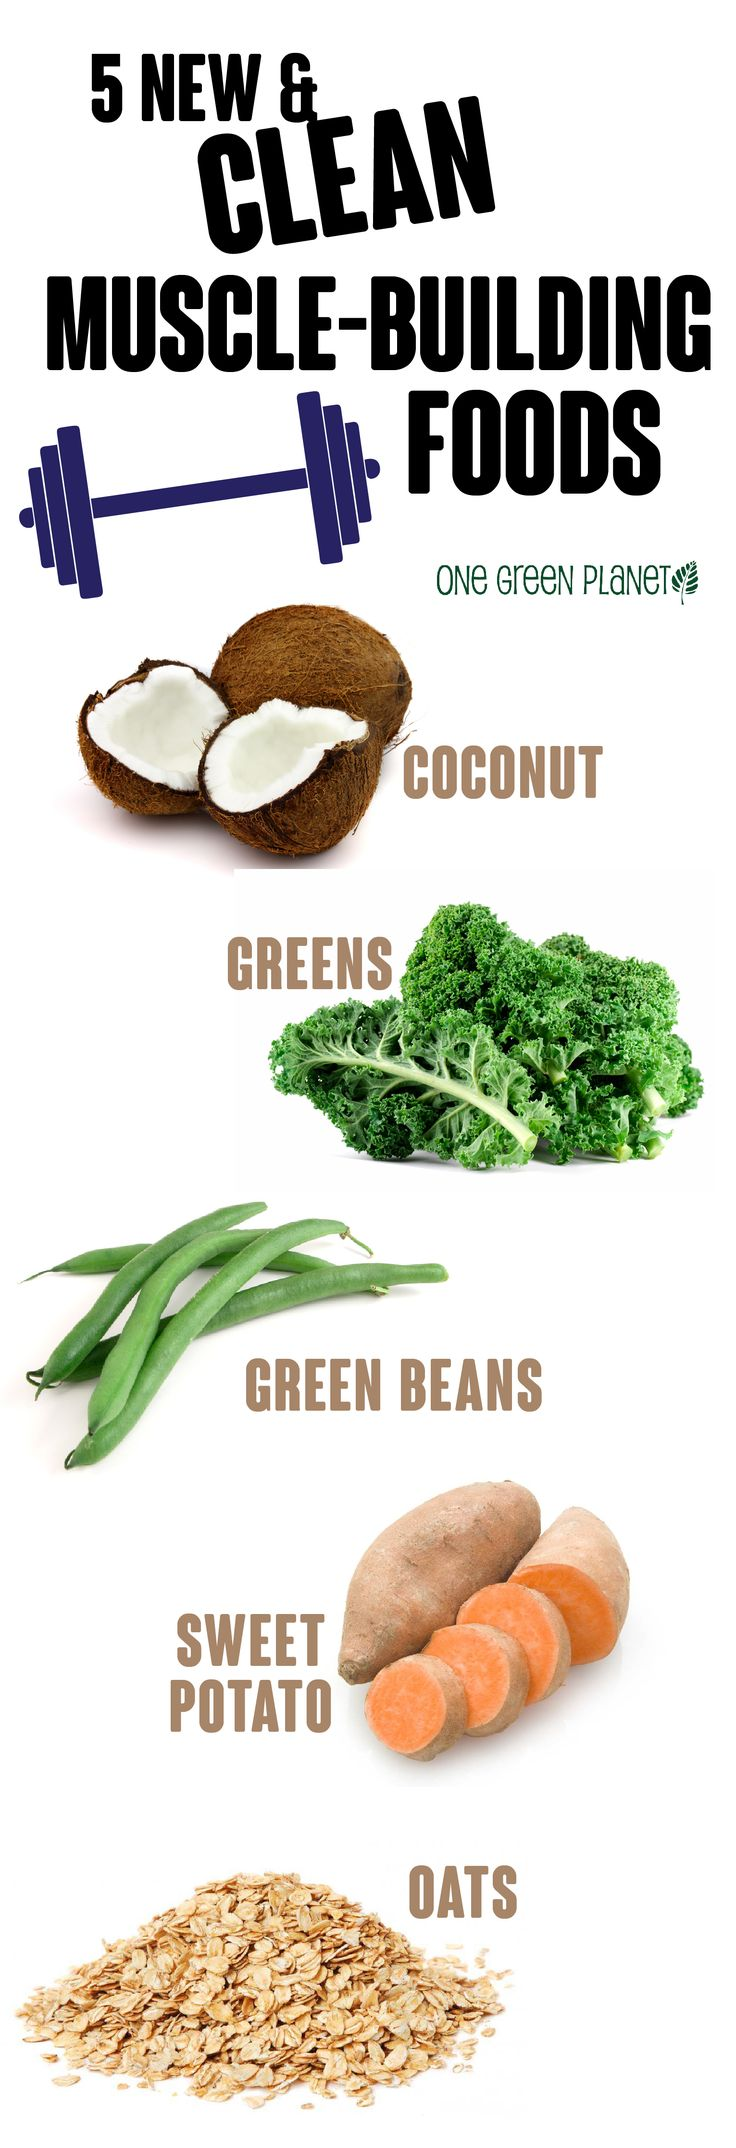 Best Foods For Lean Muscle Building